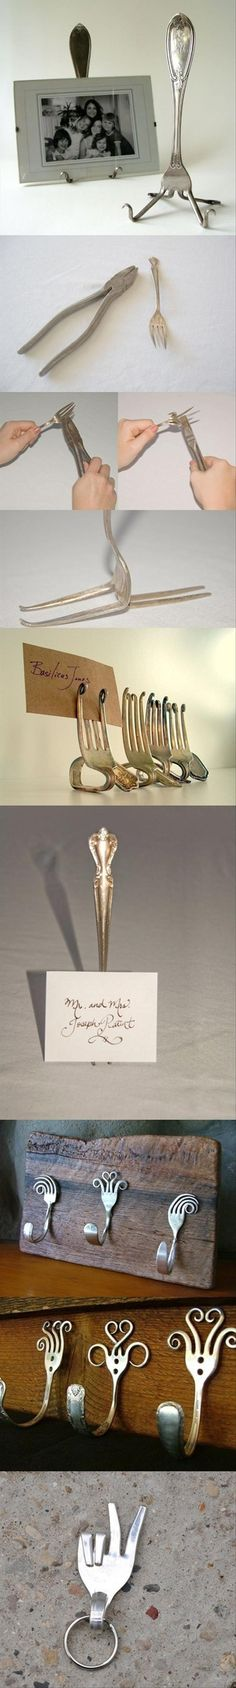 Turn Ordinary Forks into Brilliant Home Decors! Absolutely love those creative ideas!